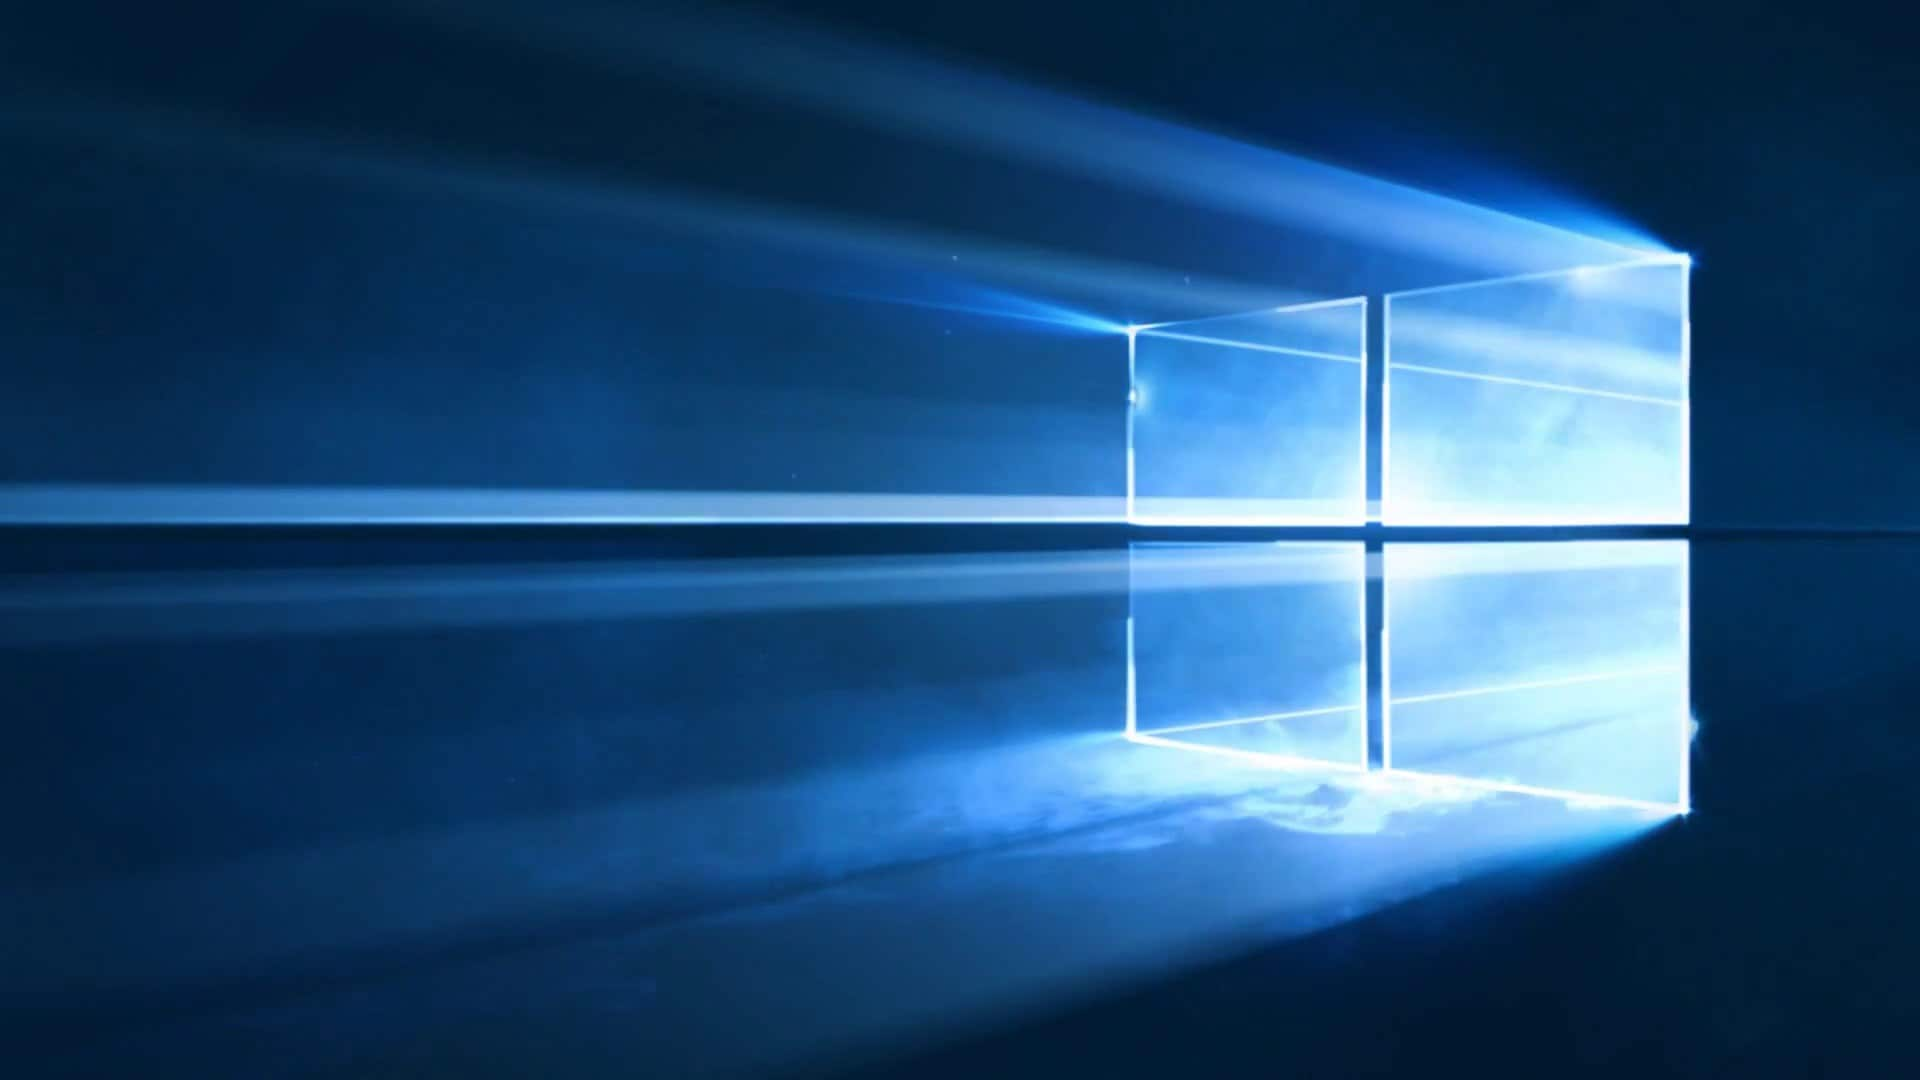 windows 10 e i piani di microsoft per il settore On ms windows 10